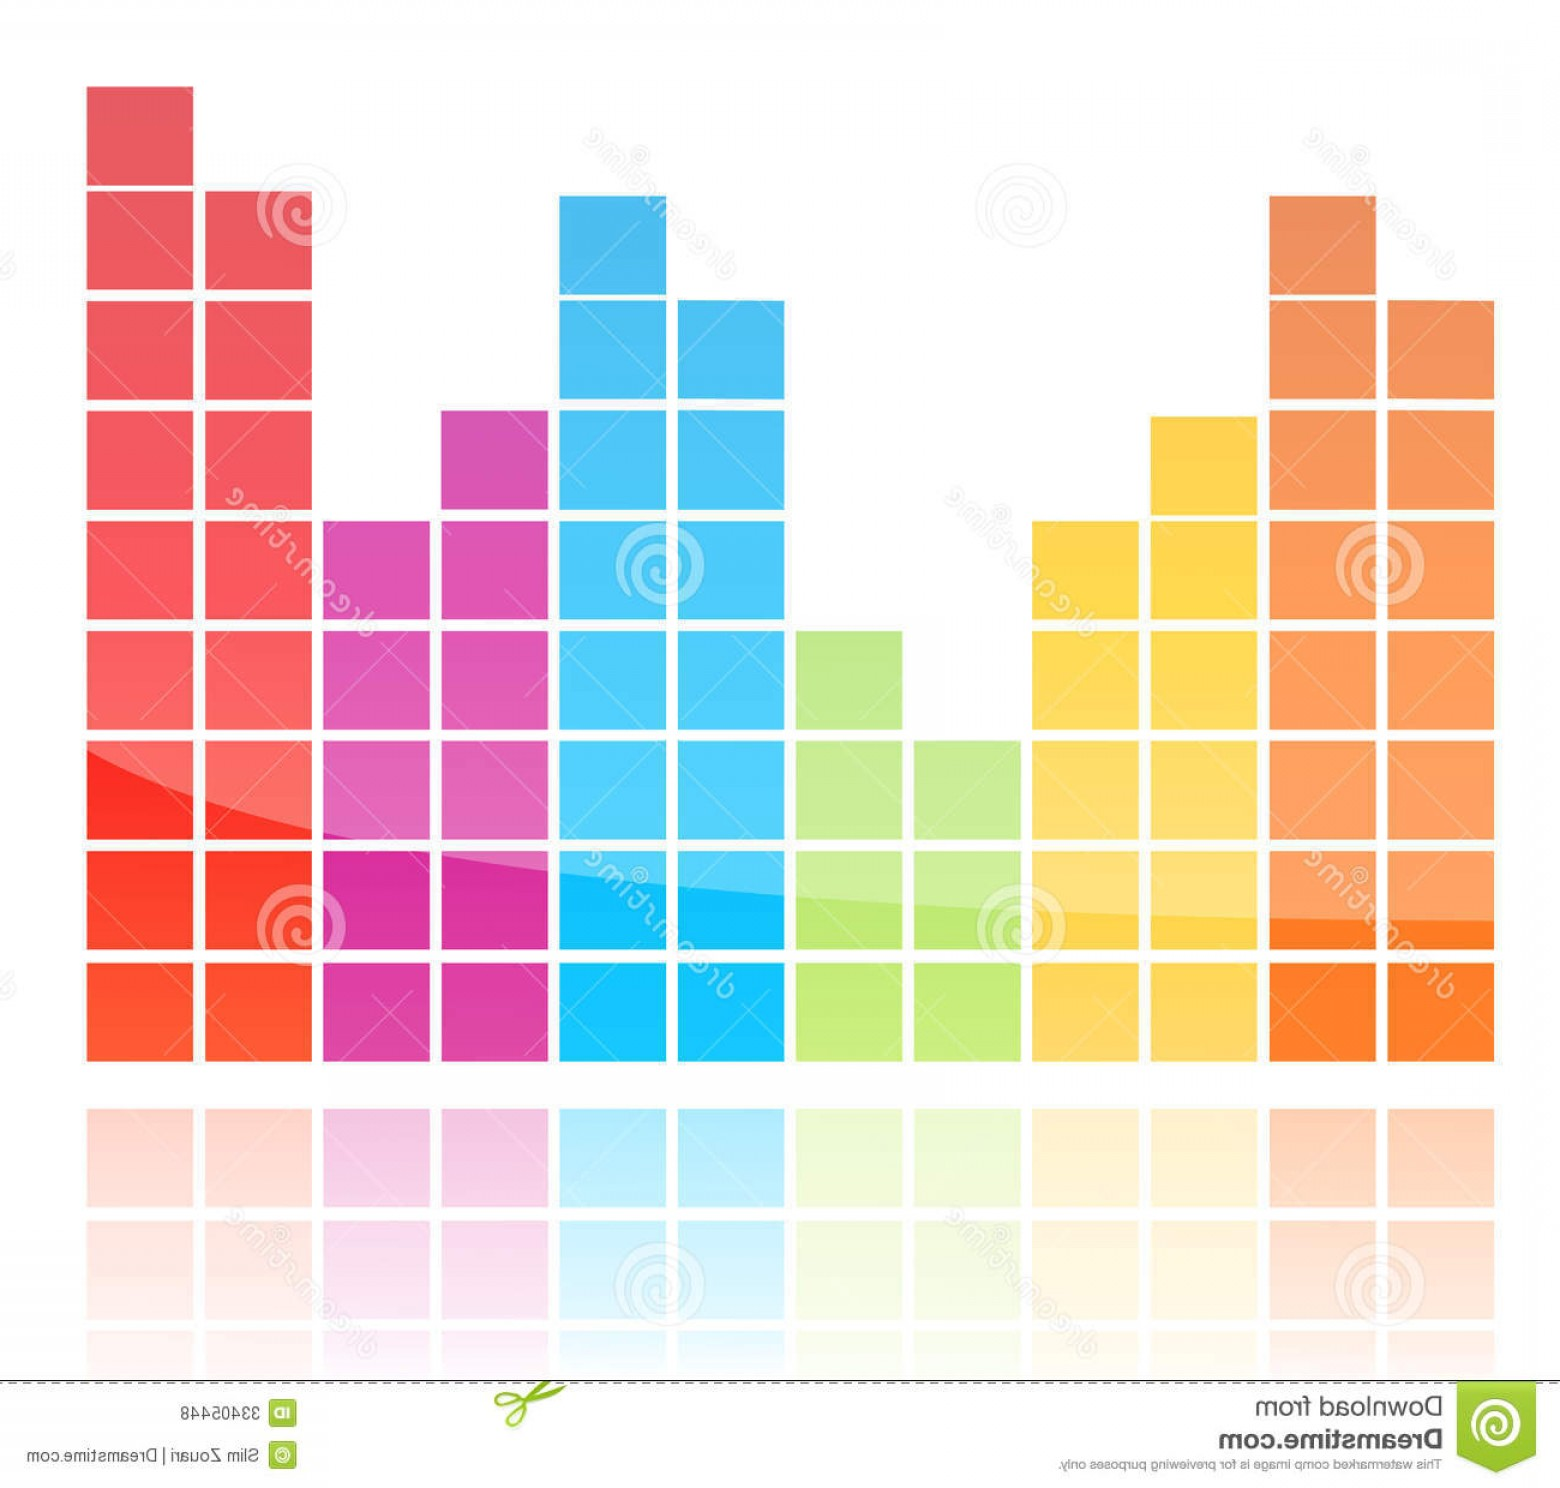 1560x1488 Royalty Free Stock Photos Shiny Colorful Equalizer Vector Graphic